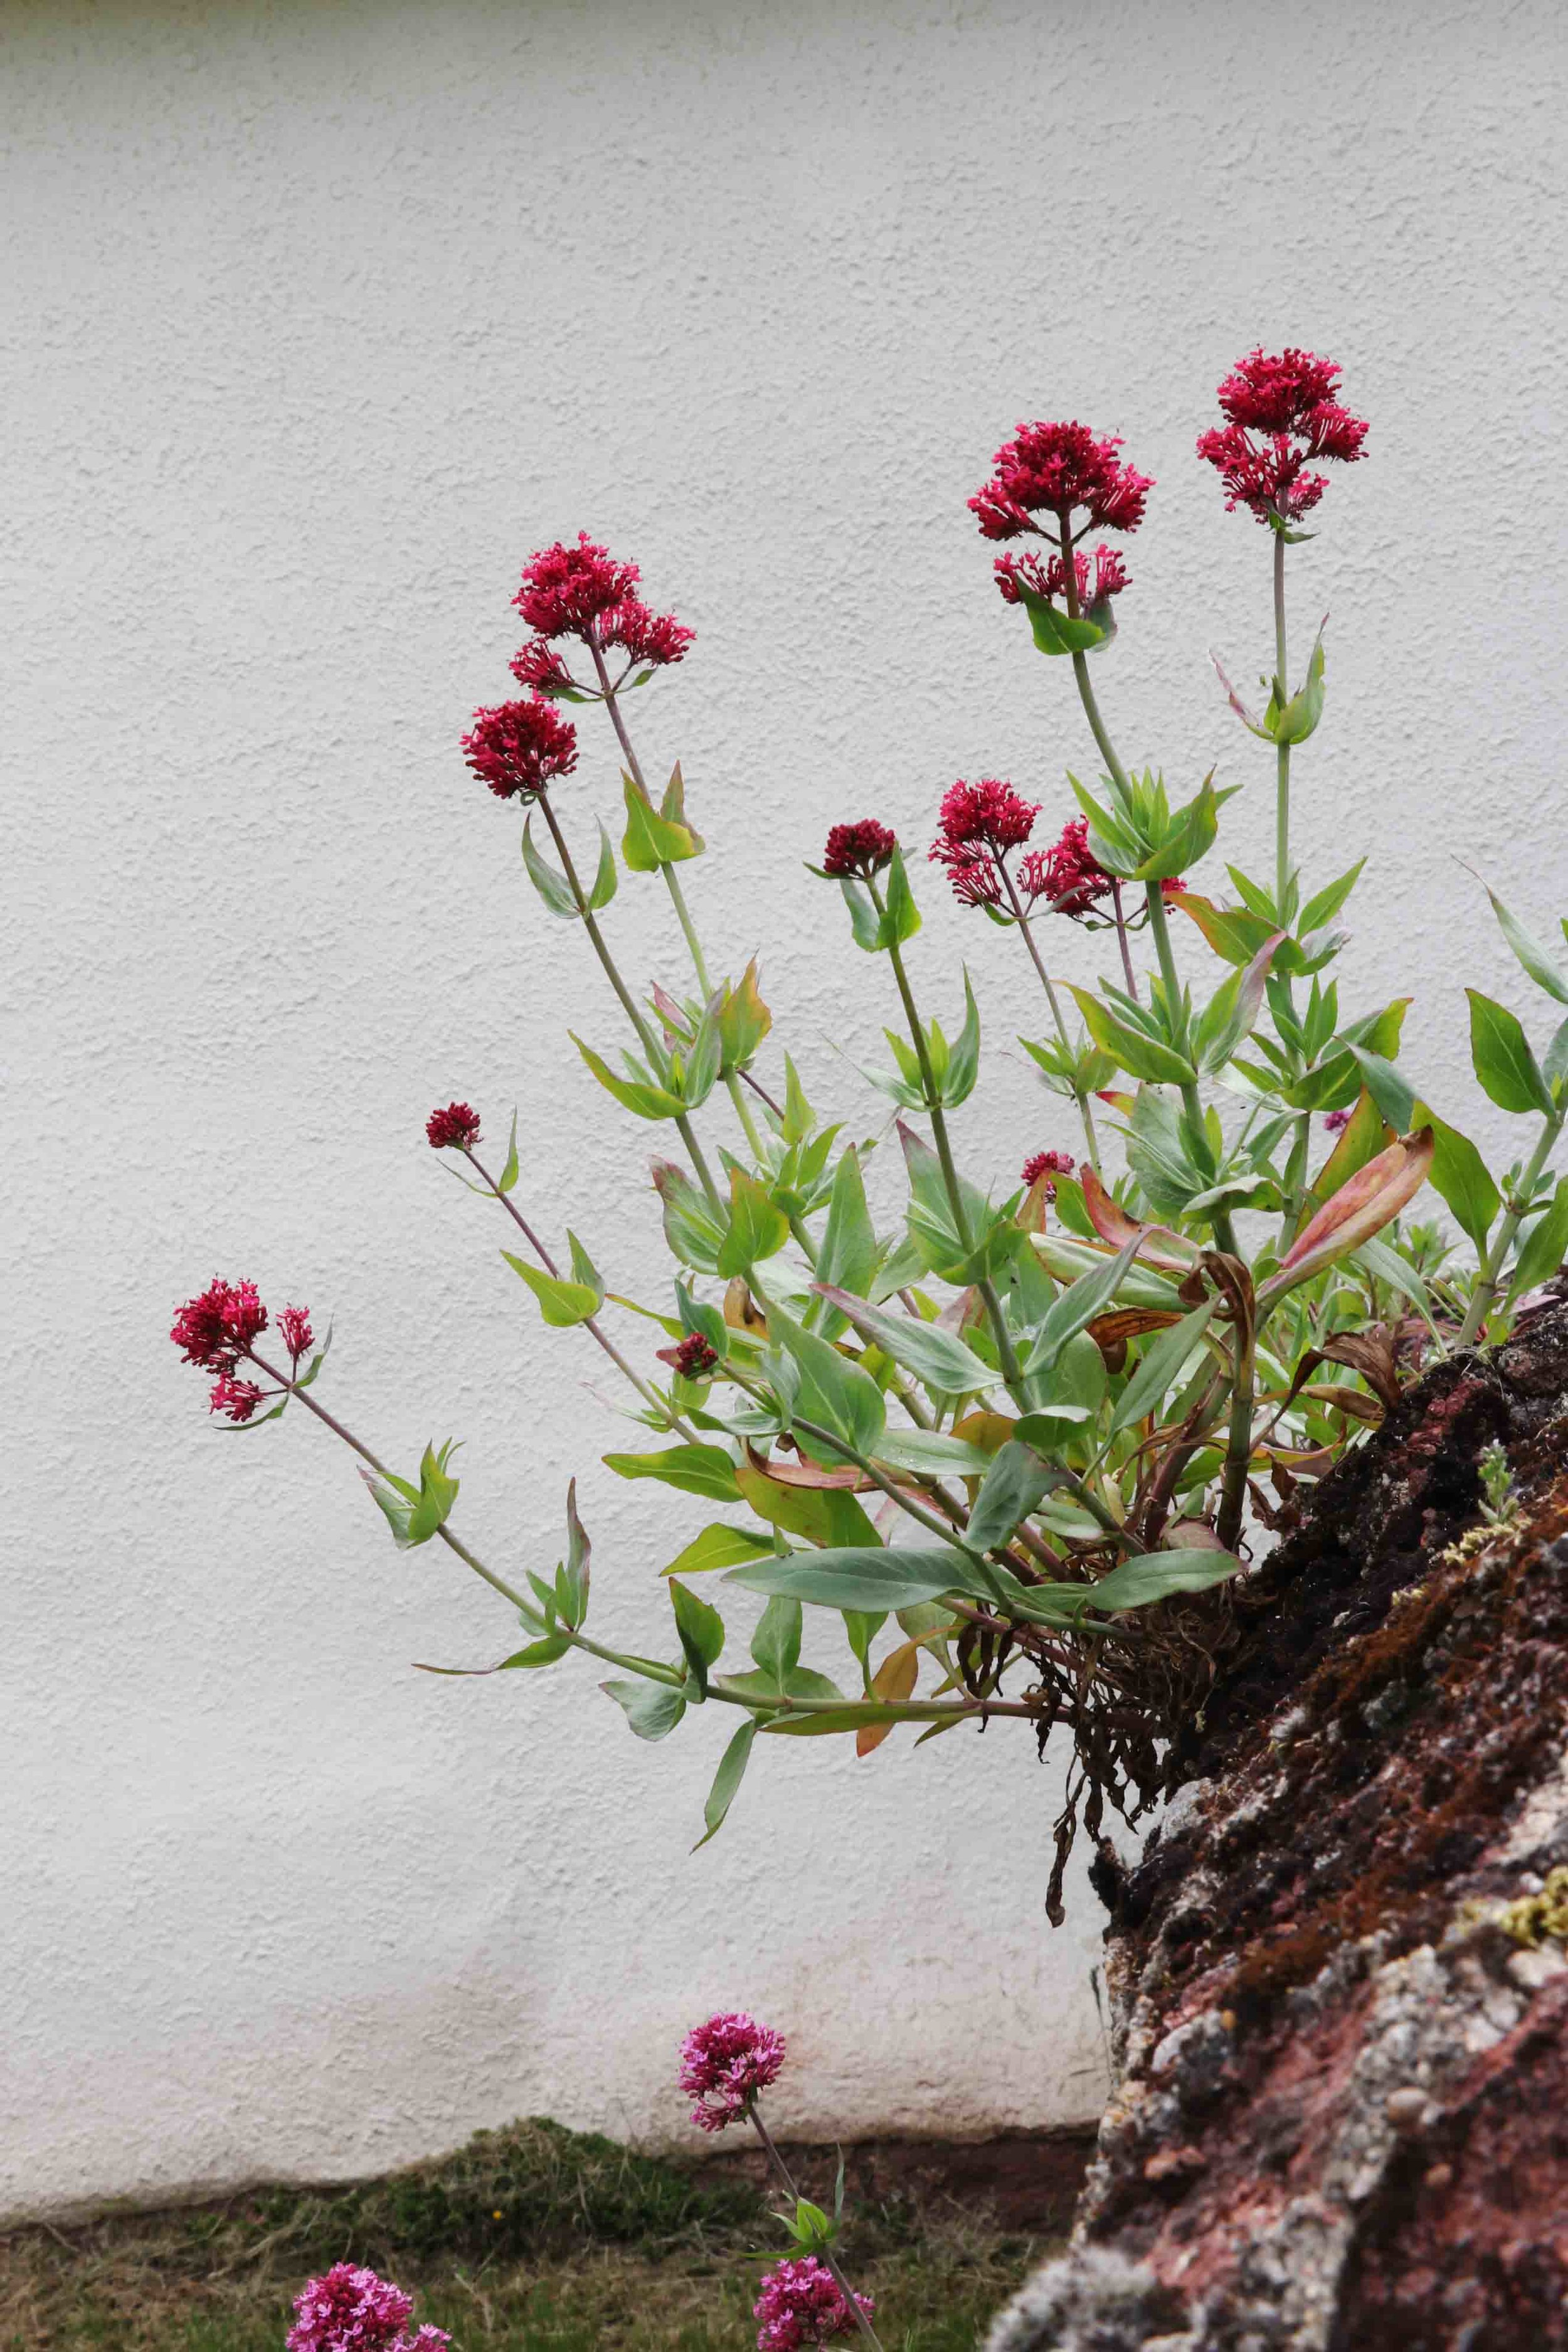 Fox Cottage at Tucketts Farm, Devon. Red Valerian growing on ancient rock walls.